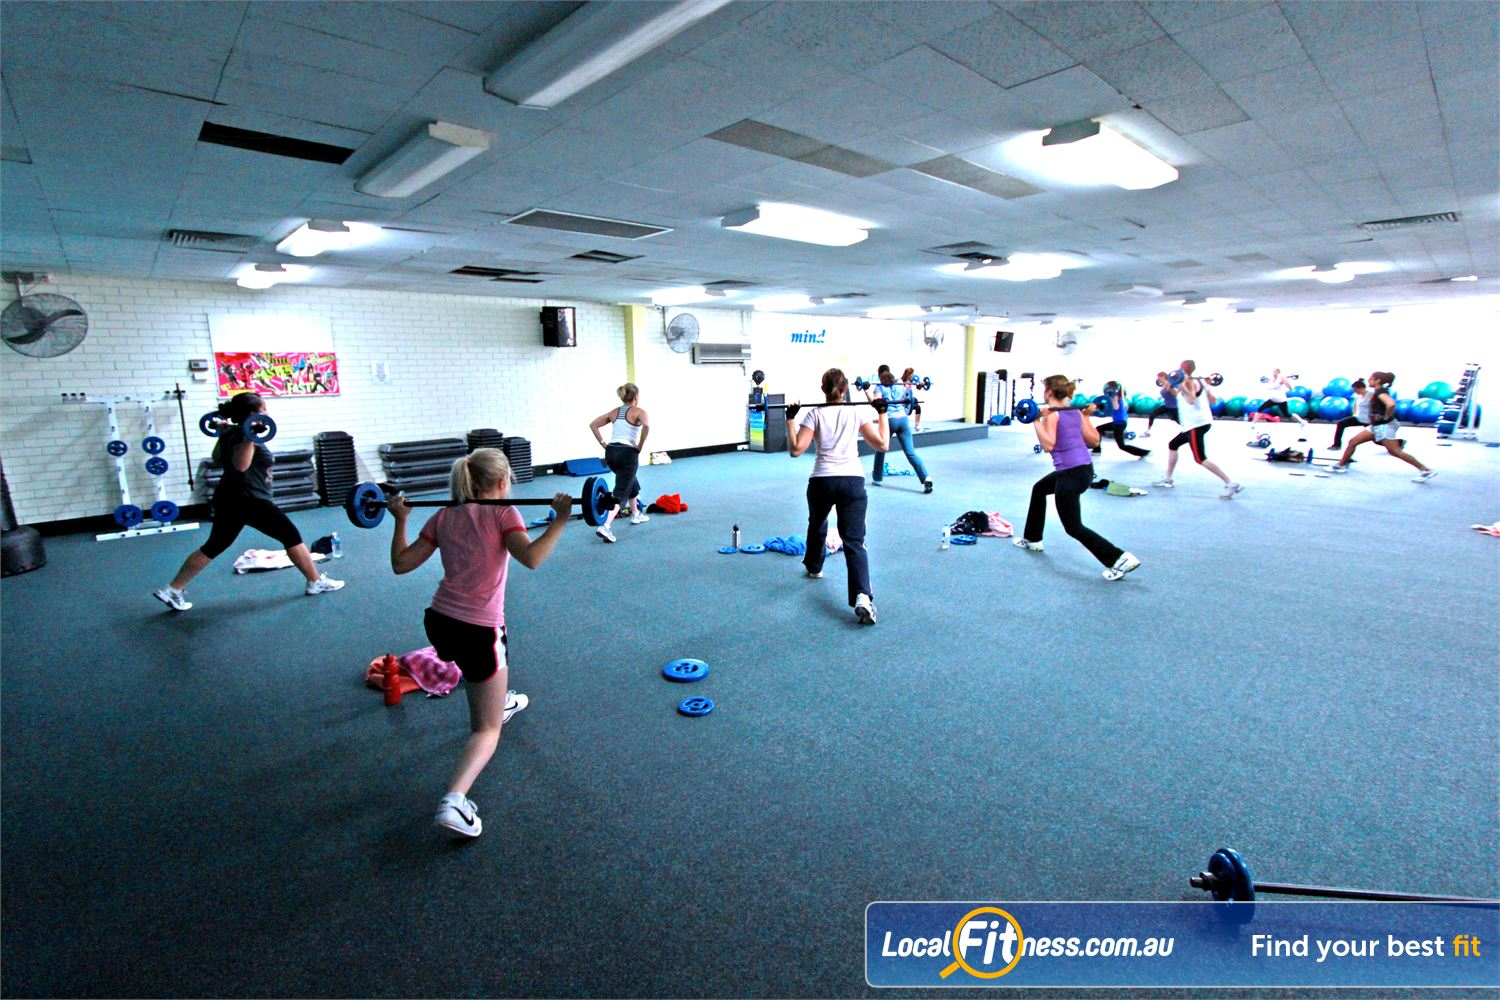 Fernwood Fitness Near Lurnea Enjoy classes such as Les Mills and Liverpool Zumba.